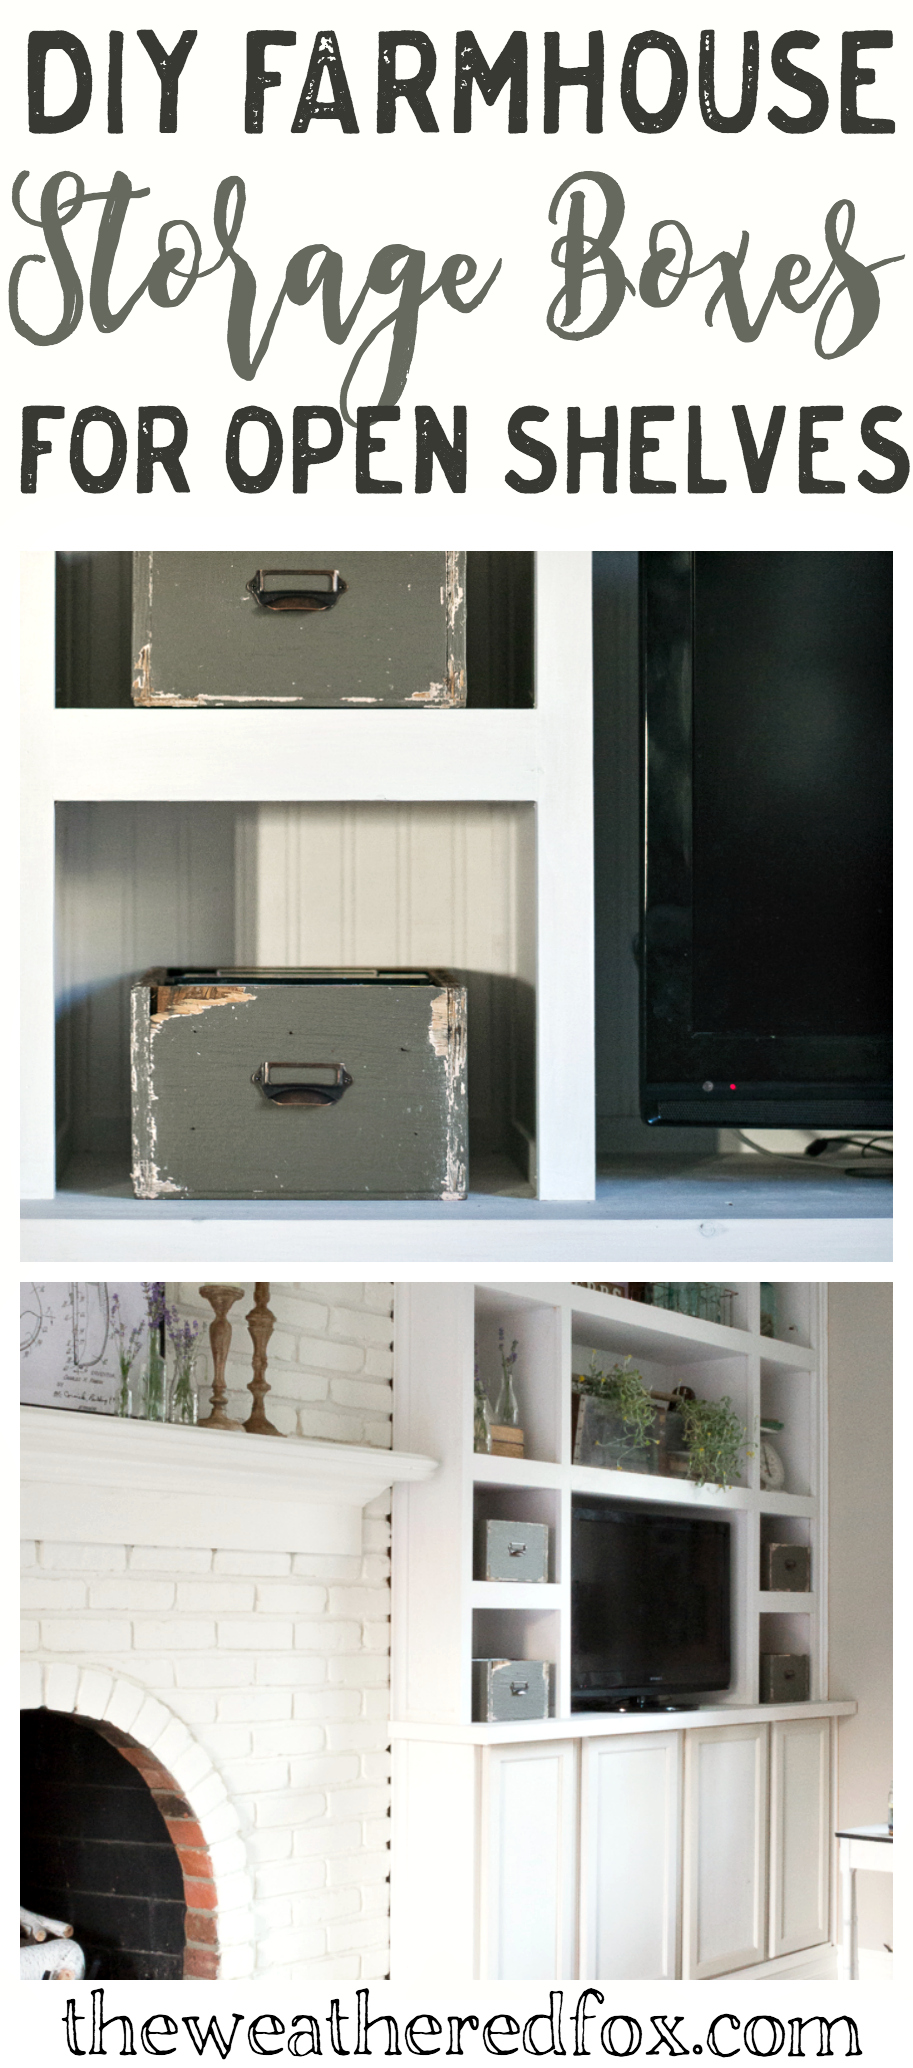 How to make farmhouse storage boxes for open shelves.